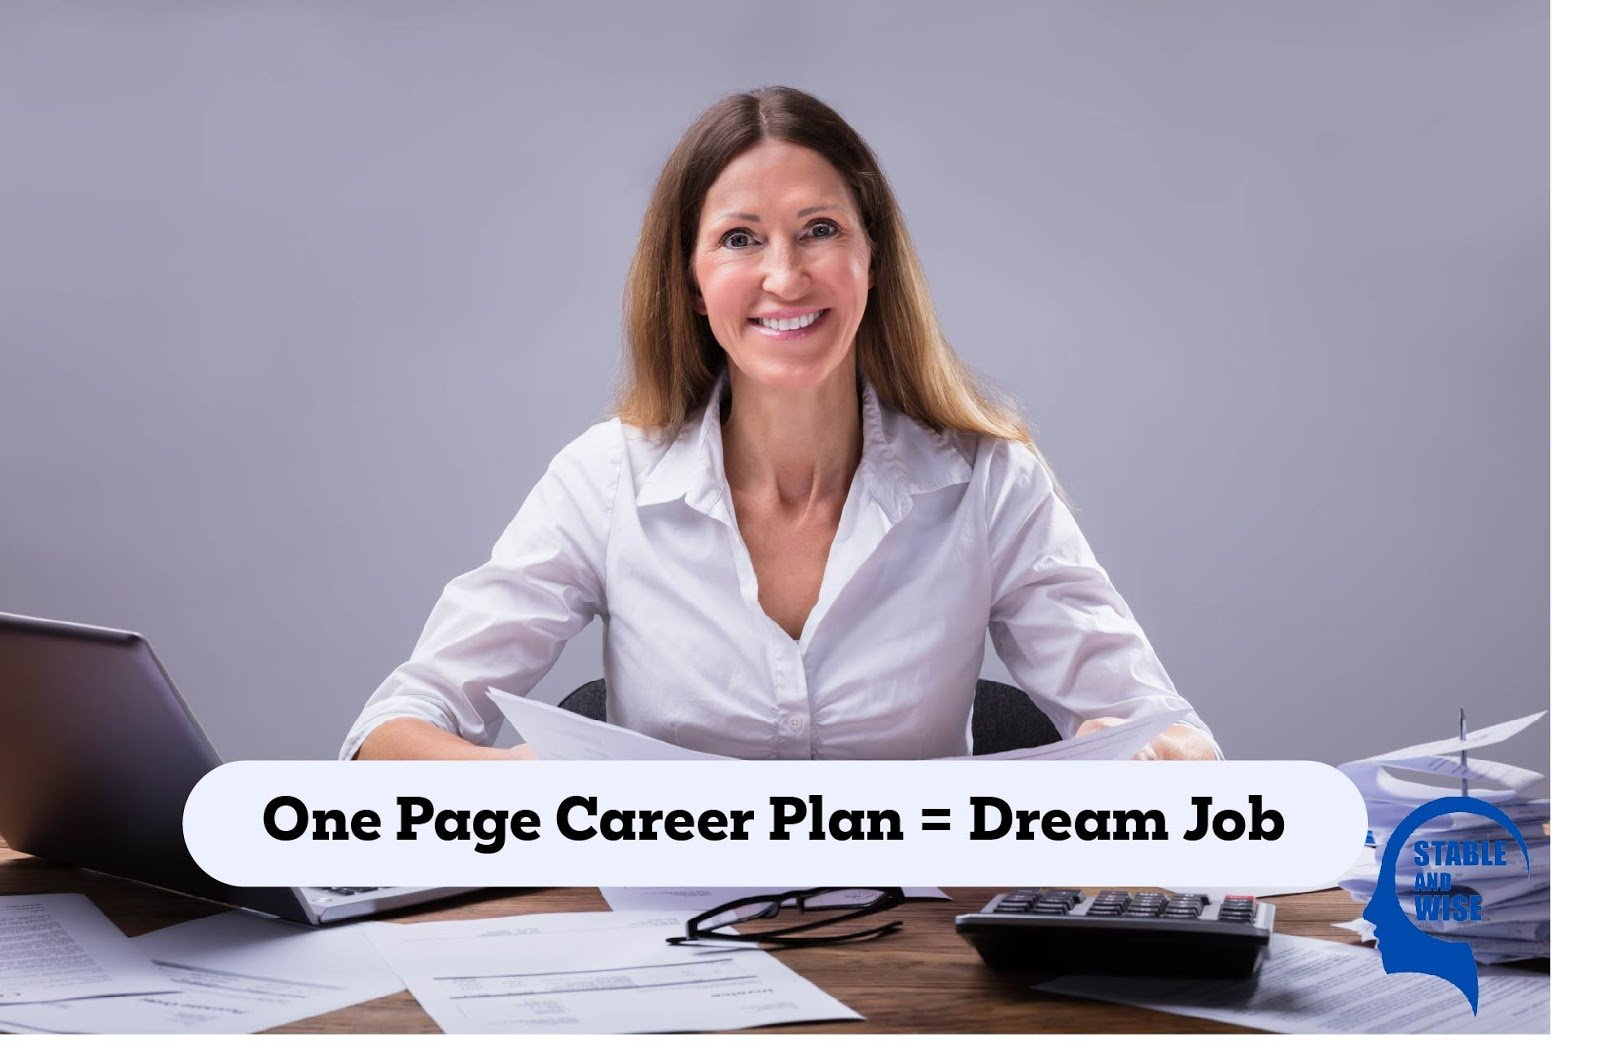 Dream Job: A mature woman sitting at a desk clearly has her dream job!